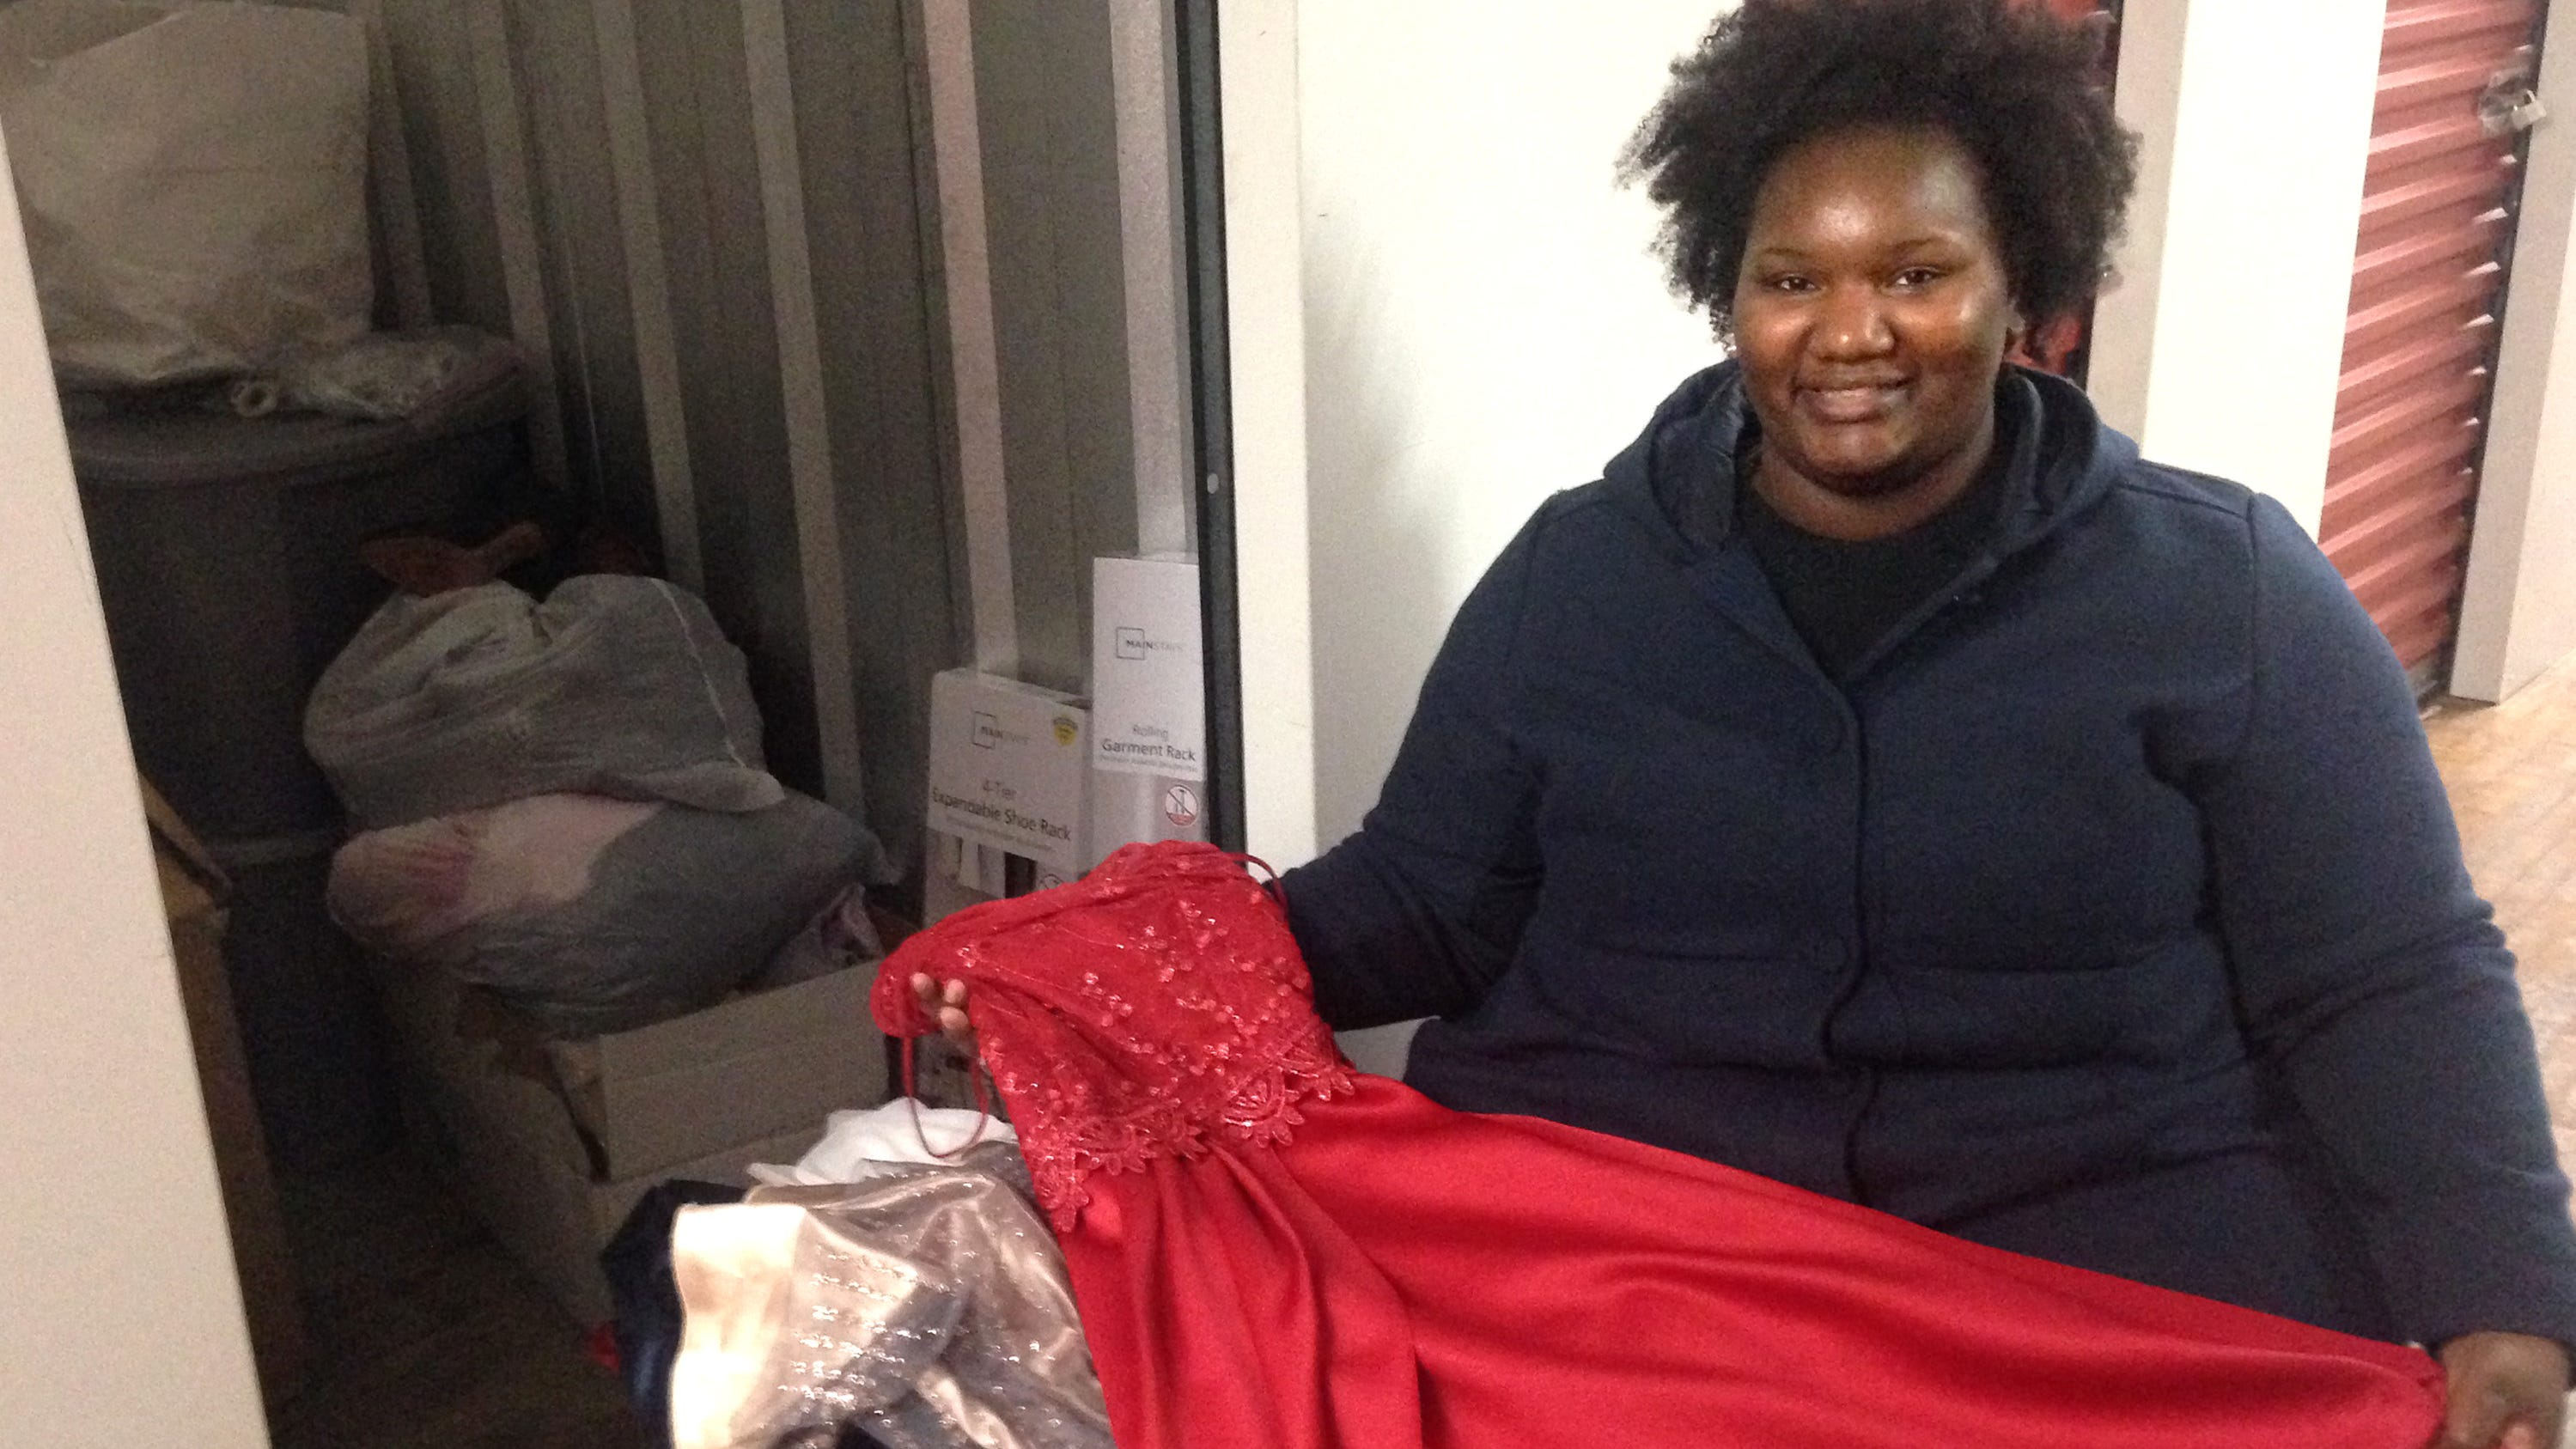 Stingl: Prom was a highlight for this former foster kid. Now she's helping others get there